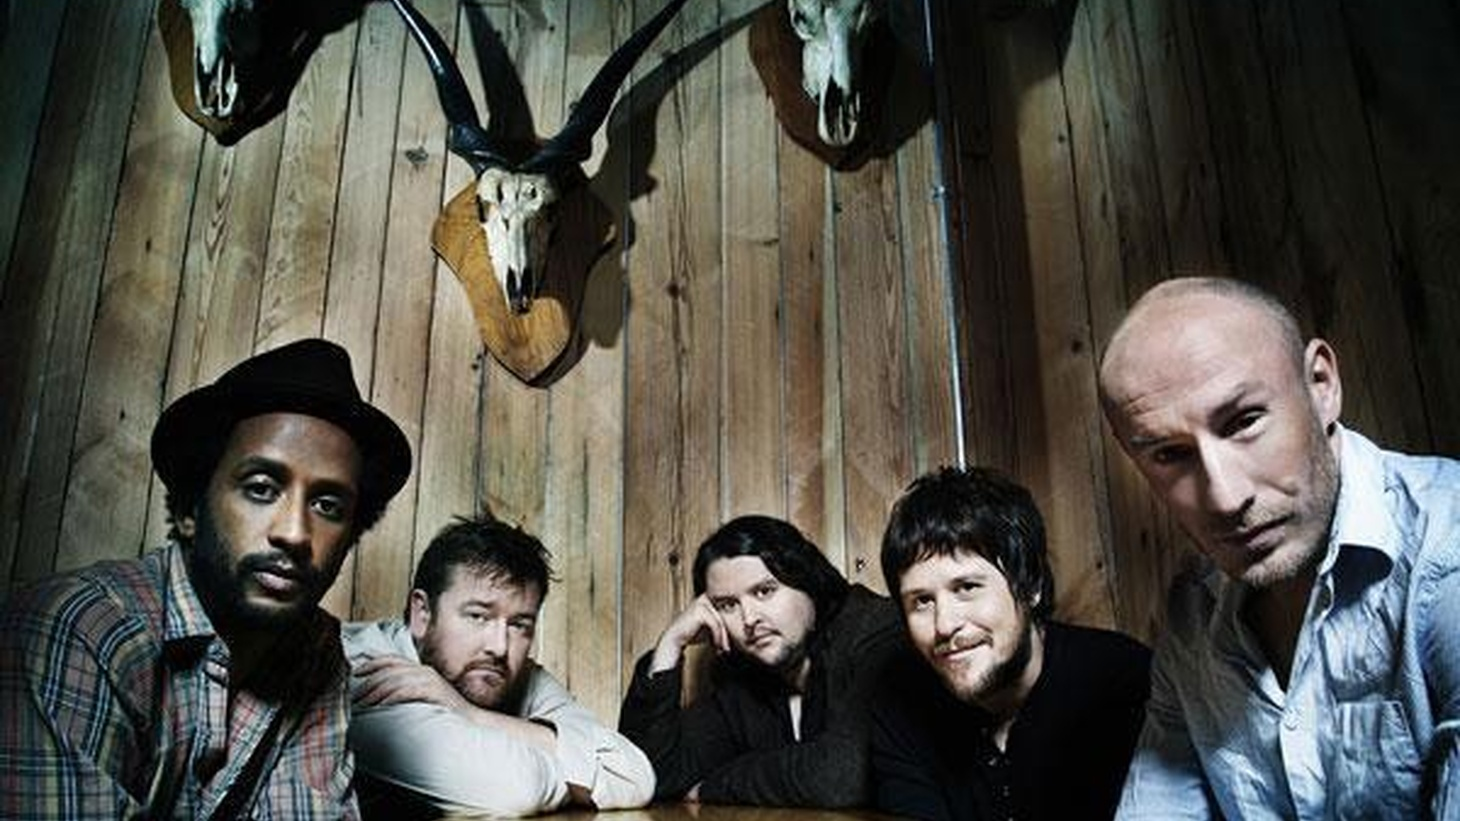 """Elbow specializes in extraordinary musical moments -- transcendent melodies, poignant lyrics, gorgeous arrangements and the heavenly voice of Guy Garvey front and center. Today's Top Tune is from their forthcoming release, Build A Rocket Boys! The song is """"The Night Will Always Win."""""""